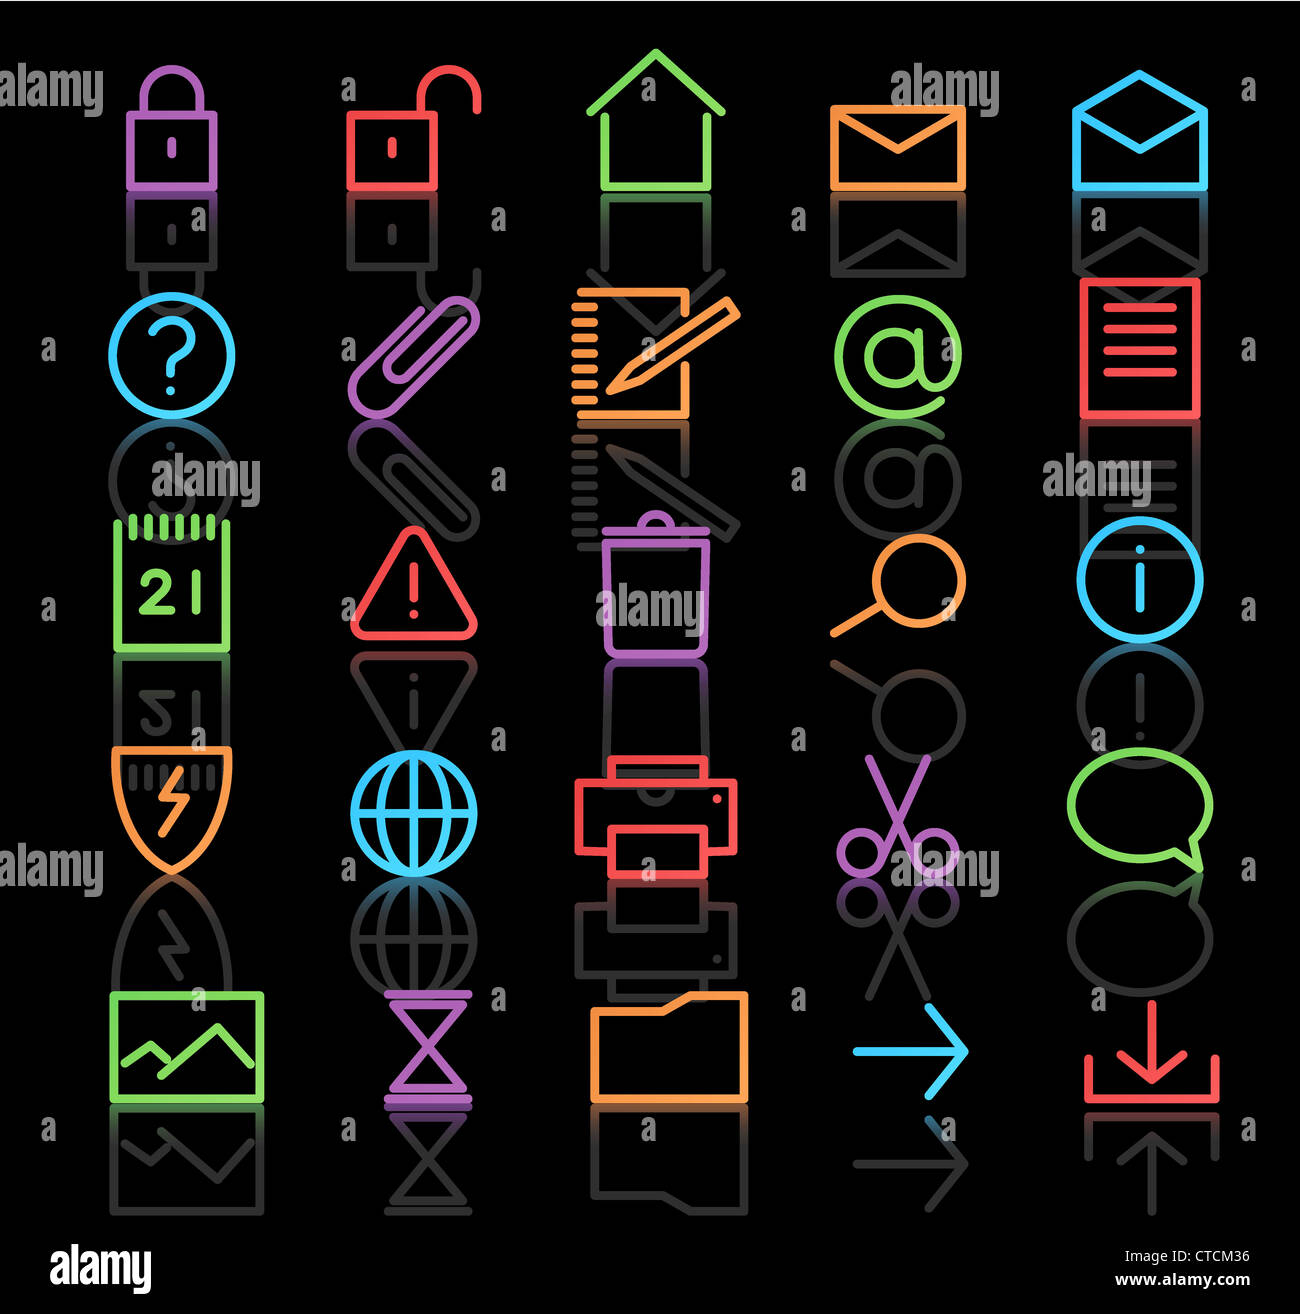 Vector set of elegant neon simple icons for common computer functions Stock Photo